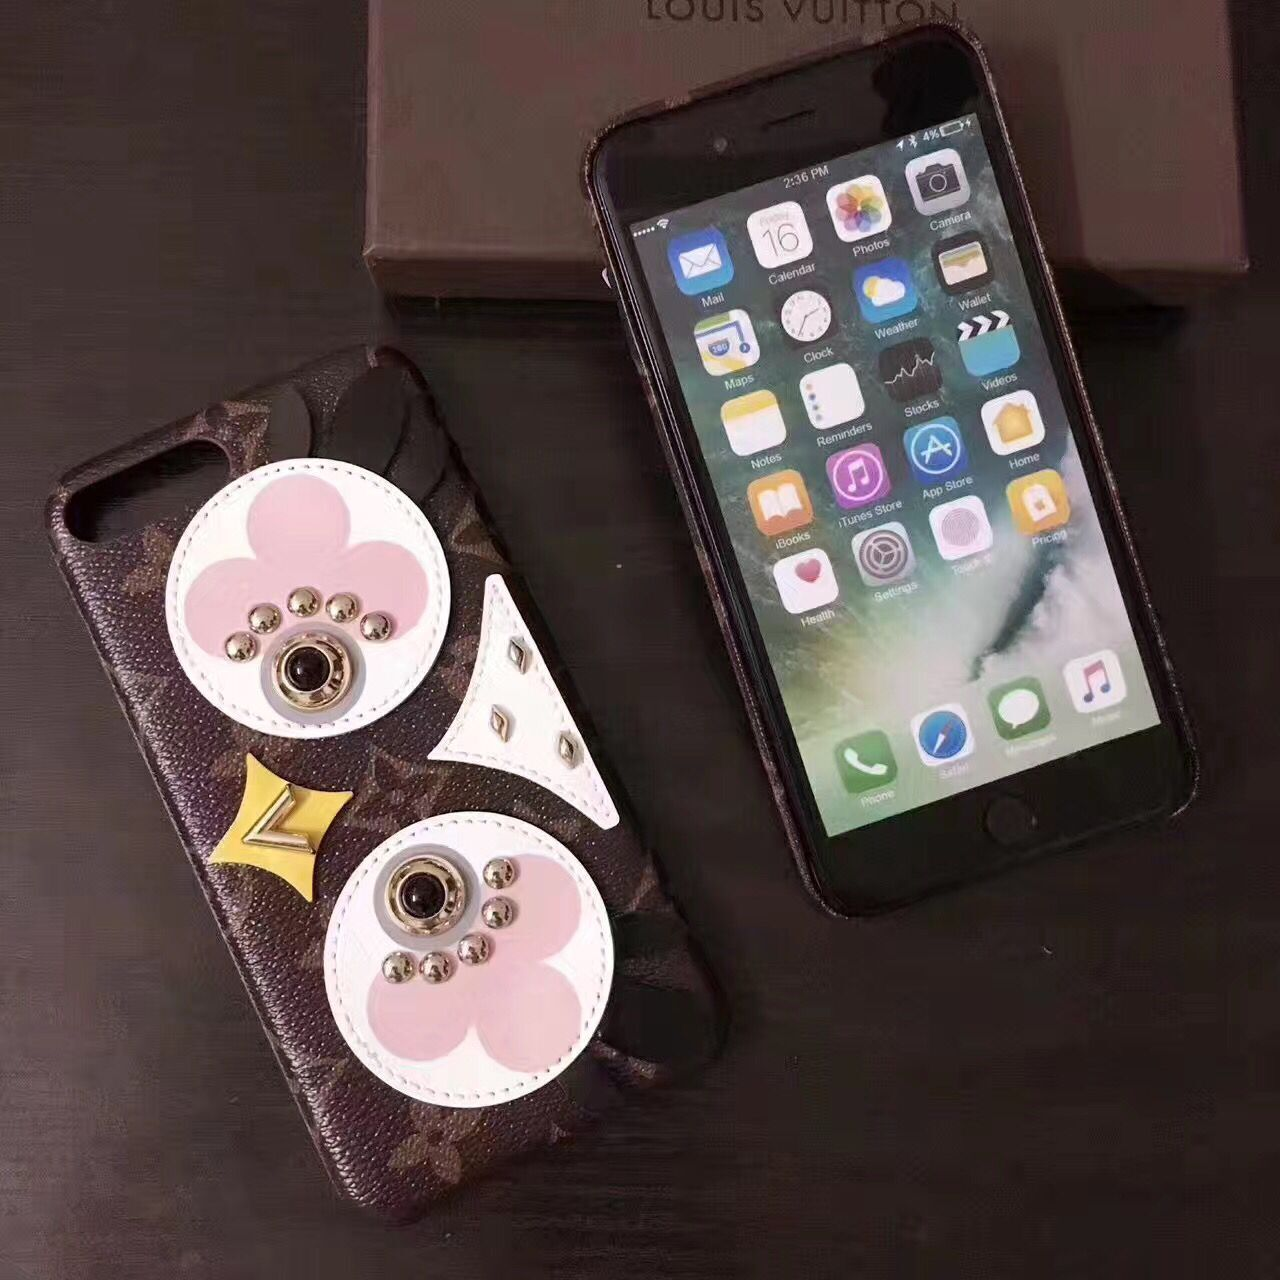 iphone 7 s phone covers buy iphone 7 covers fashion iphone7 case create your iphone case apple iphone 7 specifications a phone case iphone 7 price rate what is the best iphone 7 case apple iphone covers